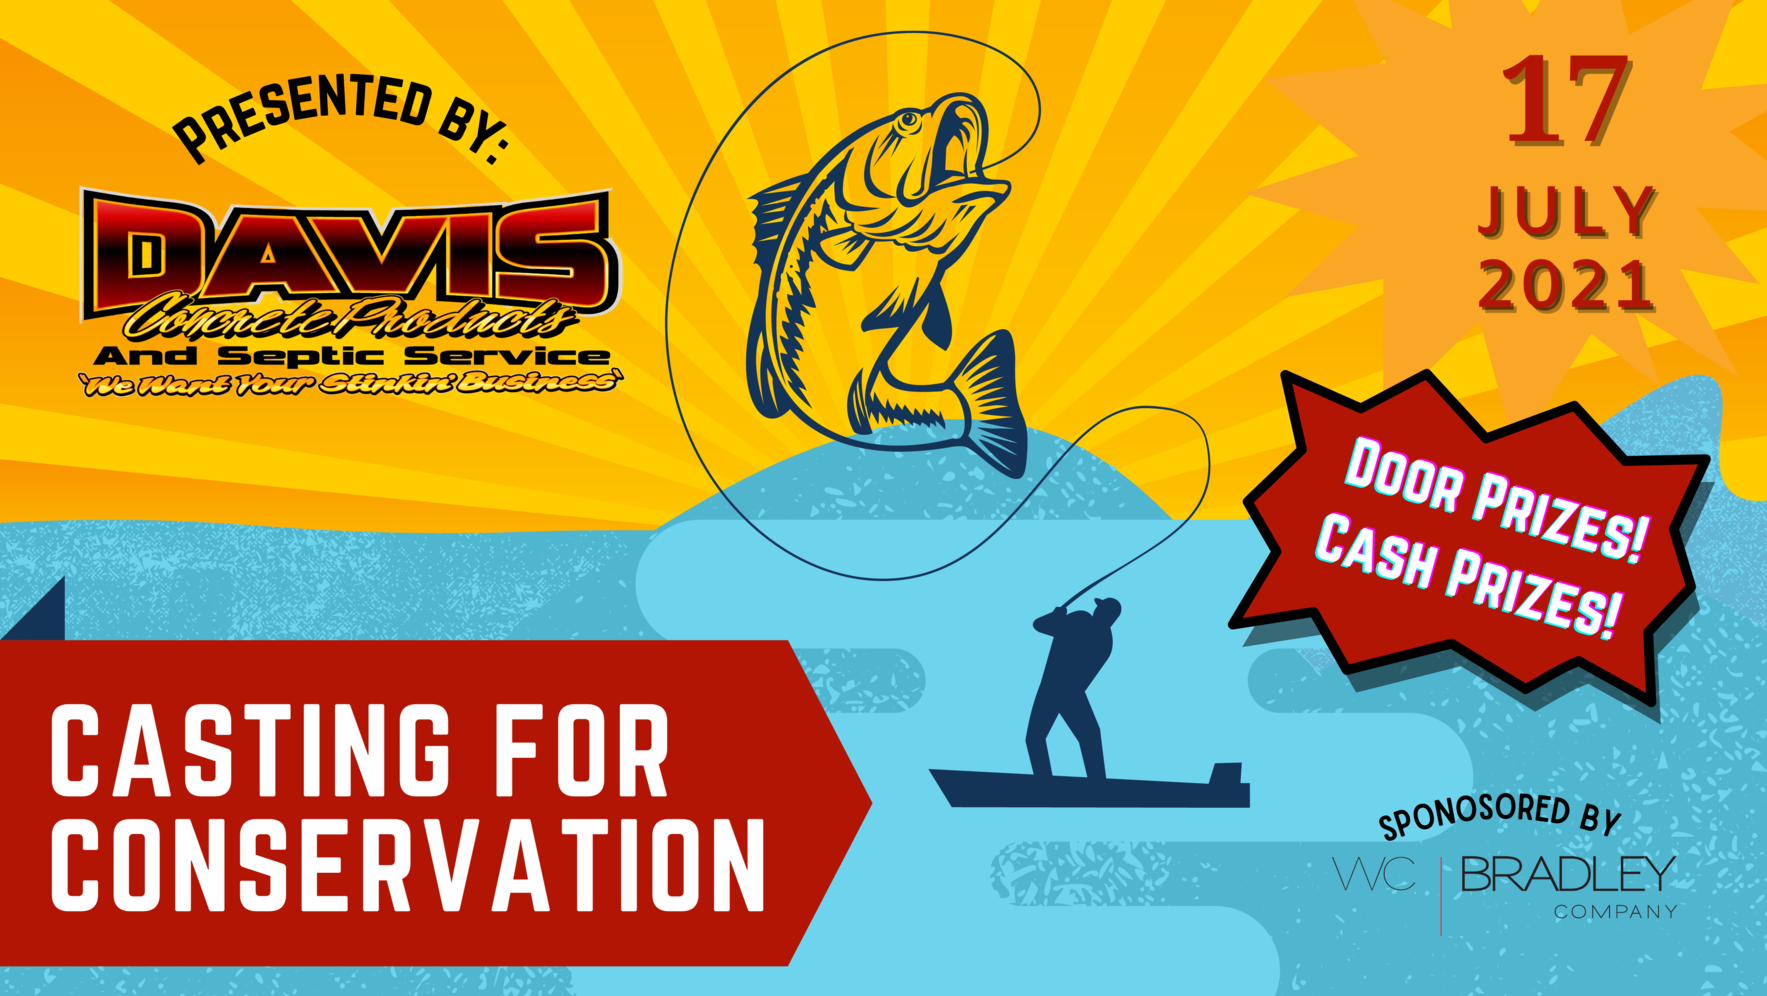 2021 Casting for Conservation Bass Tournament image